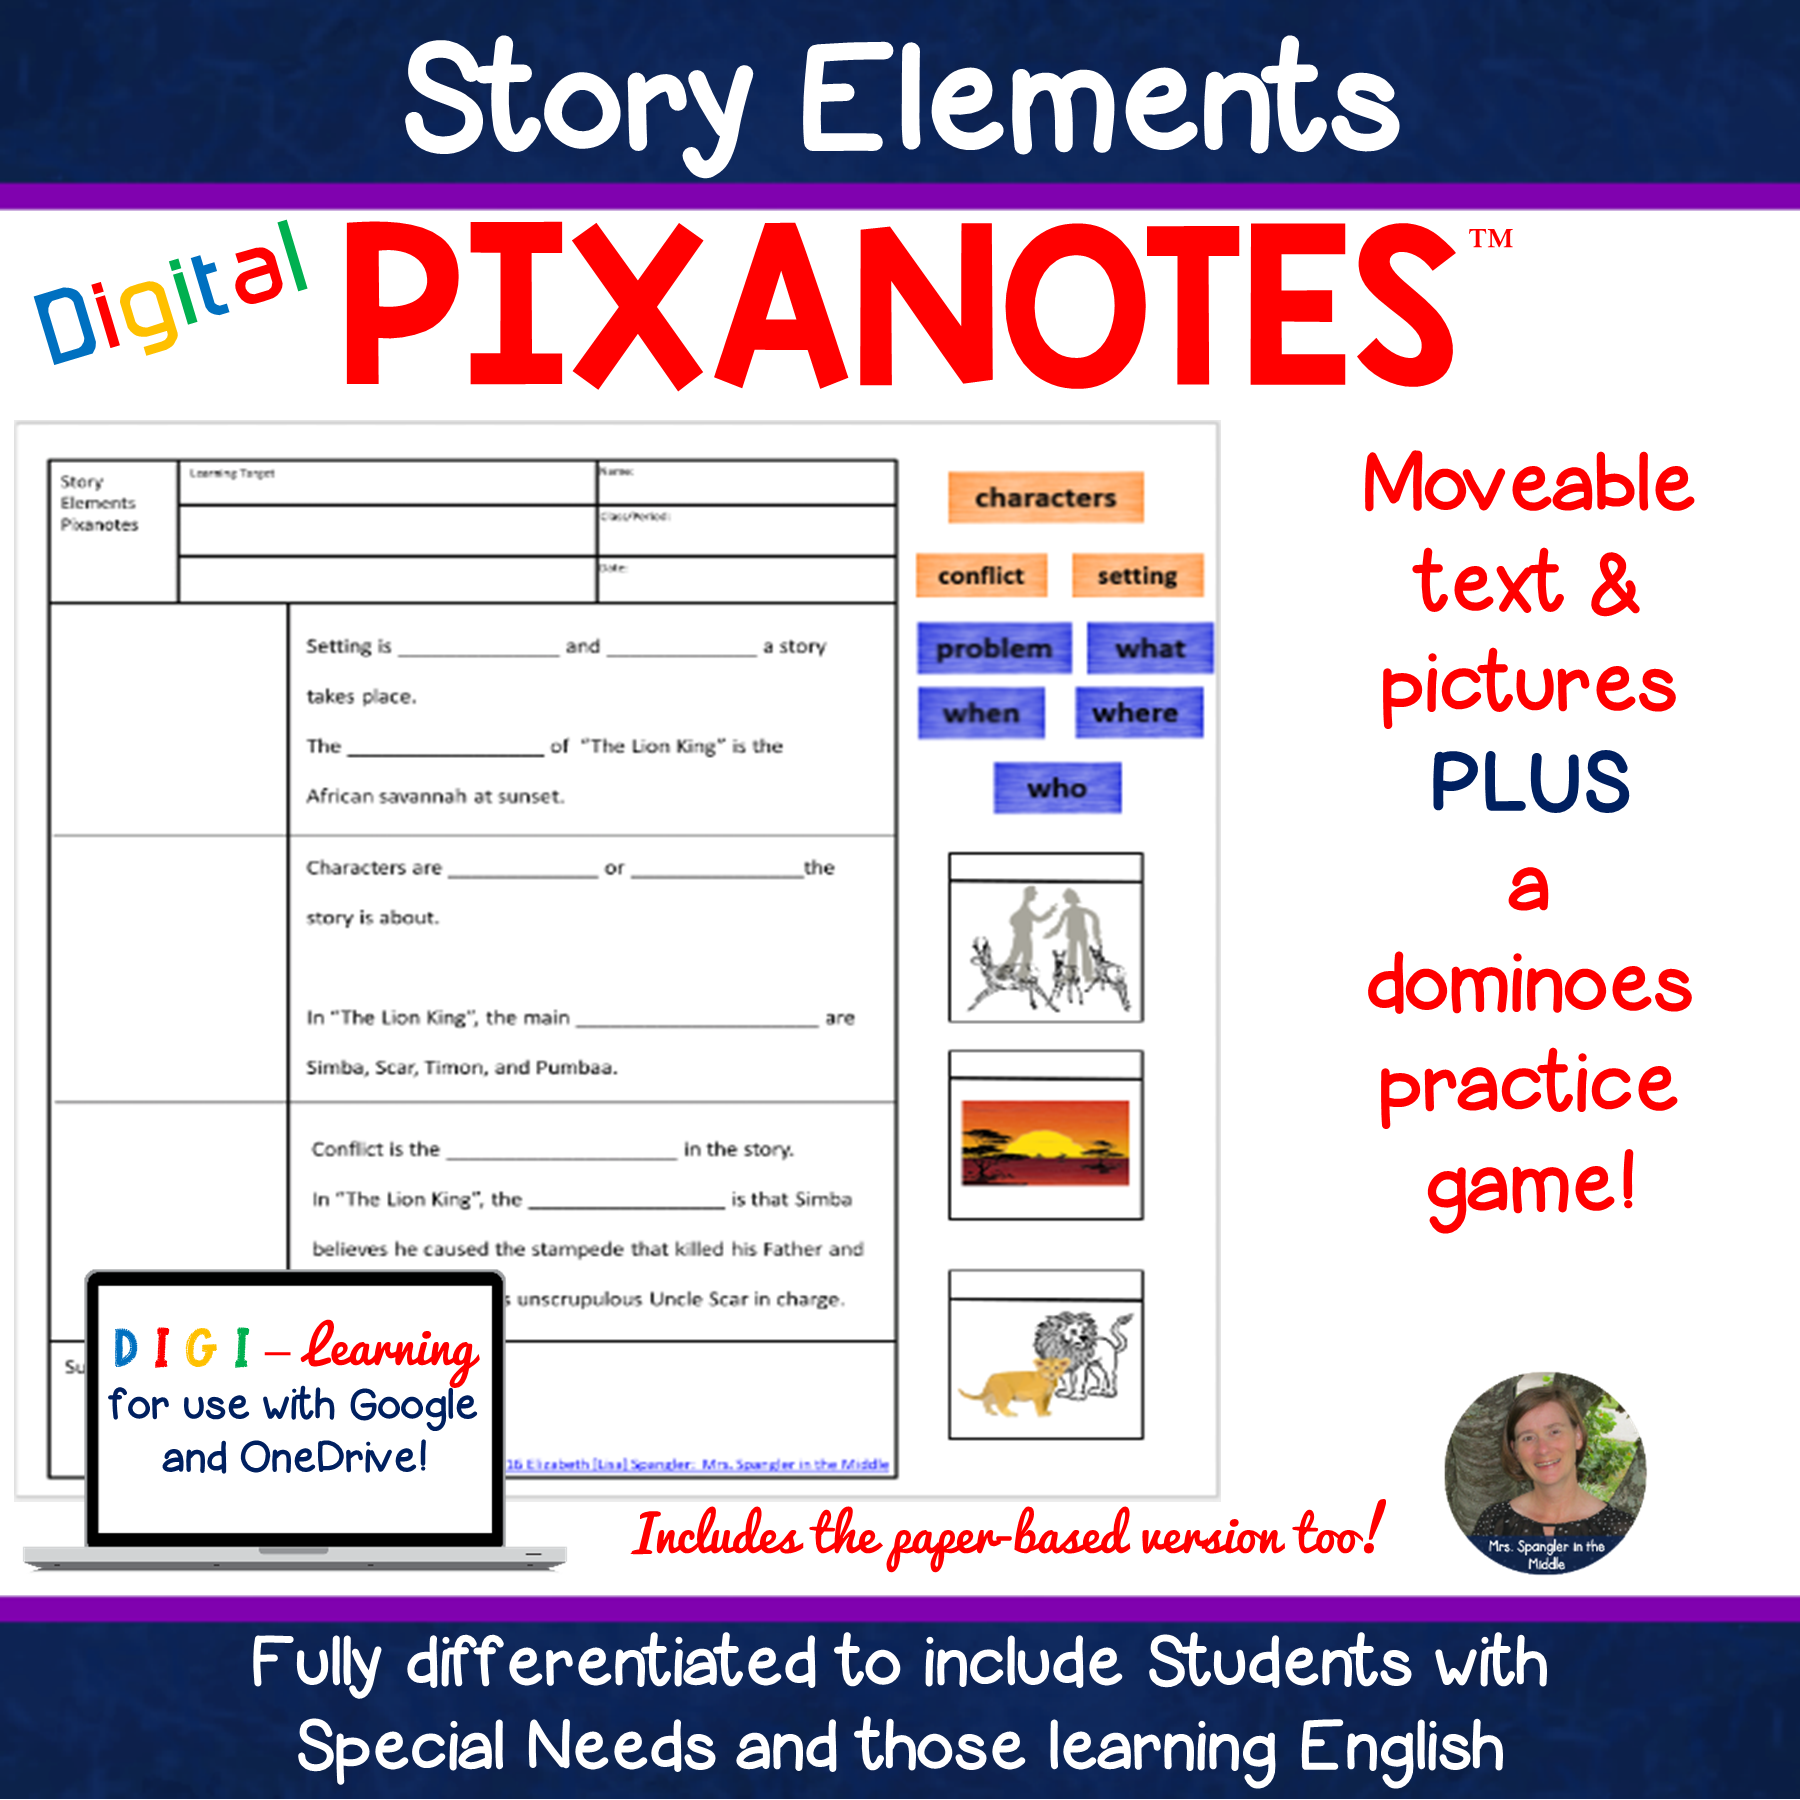 Plot /Story Elements DIGITAL Pixanotes® + Dominoes Practice Game!